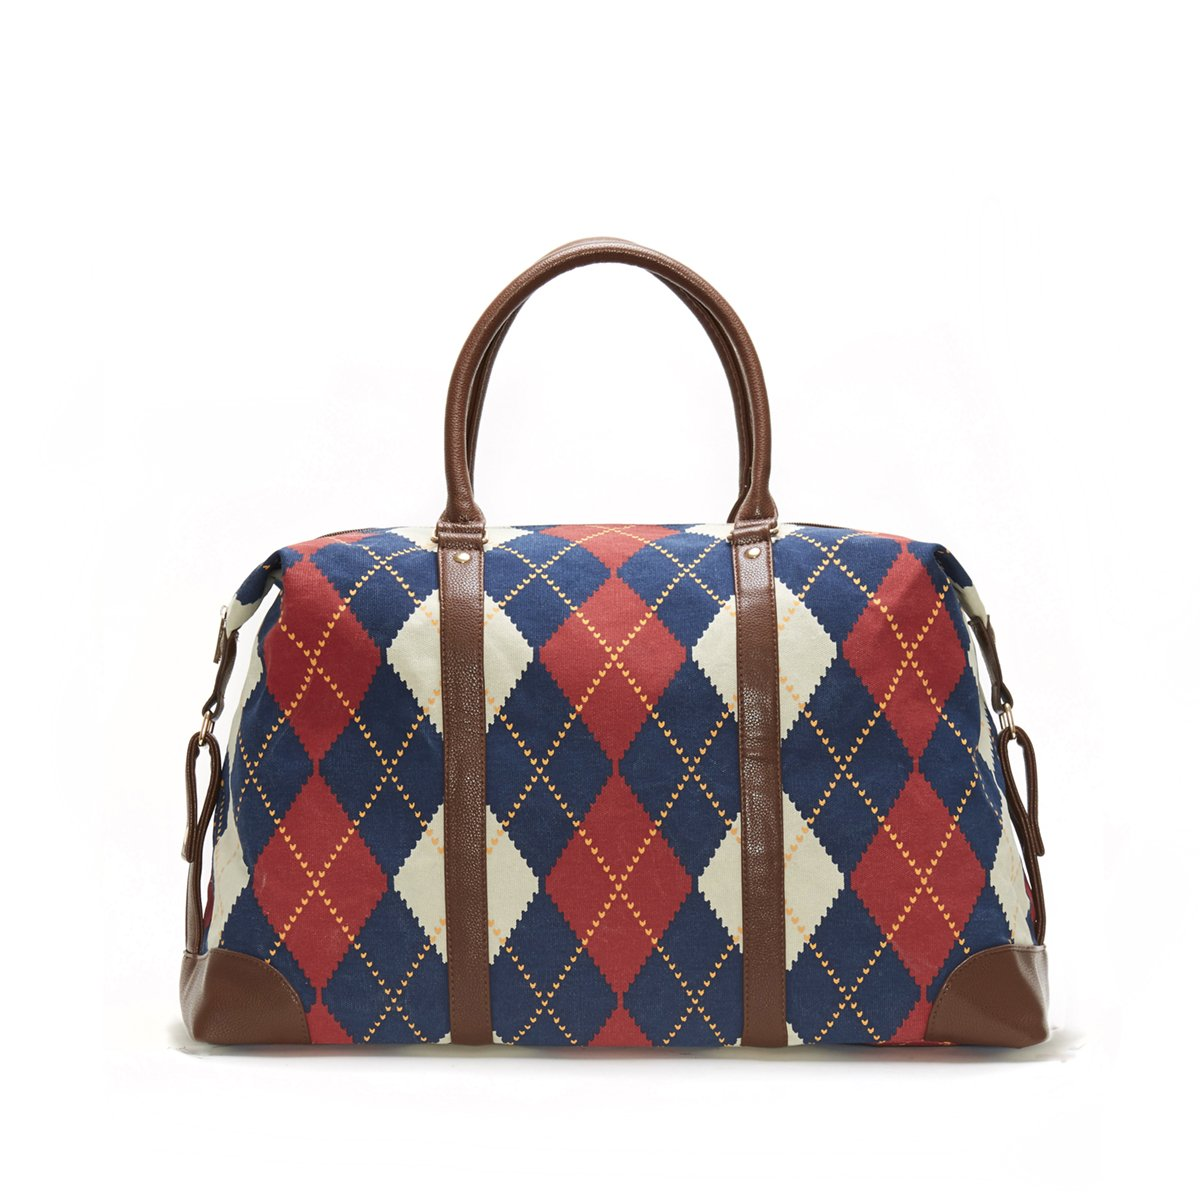 Limited Time Sale Royal Heritage Print Argyle Duffle Fashion Bag - MSRP 99 by Lulu Dharma